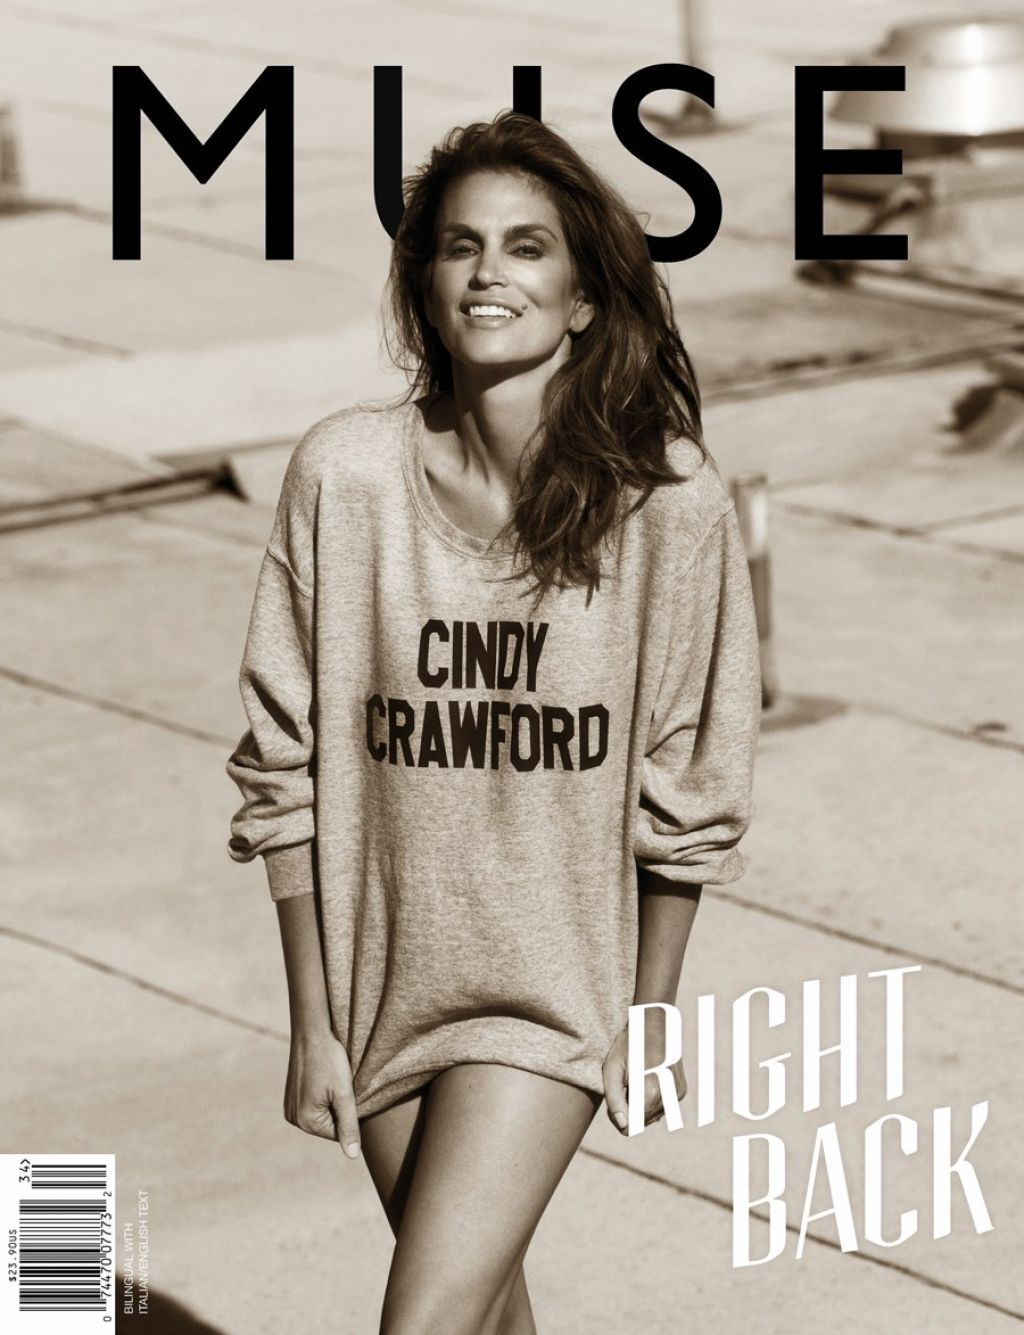 a-guide-to-cool-cindy-crawford-folkr-blog-photo-mode-10